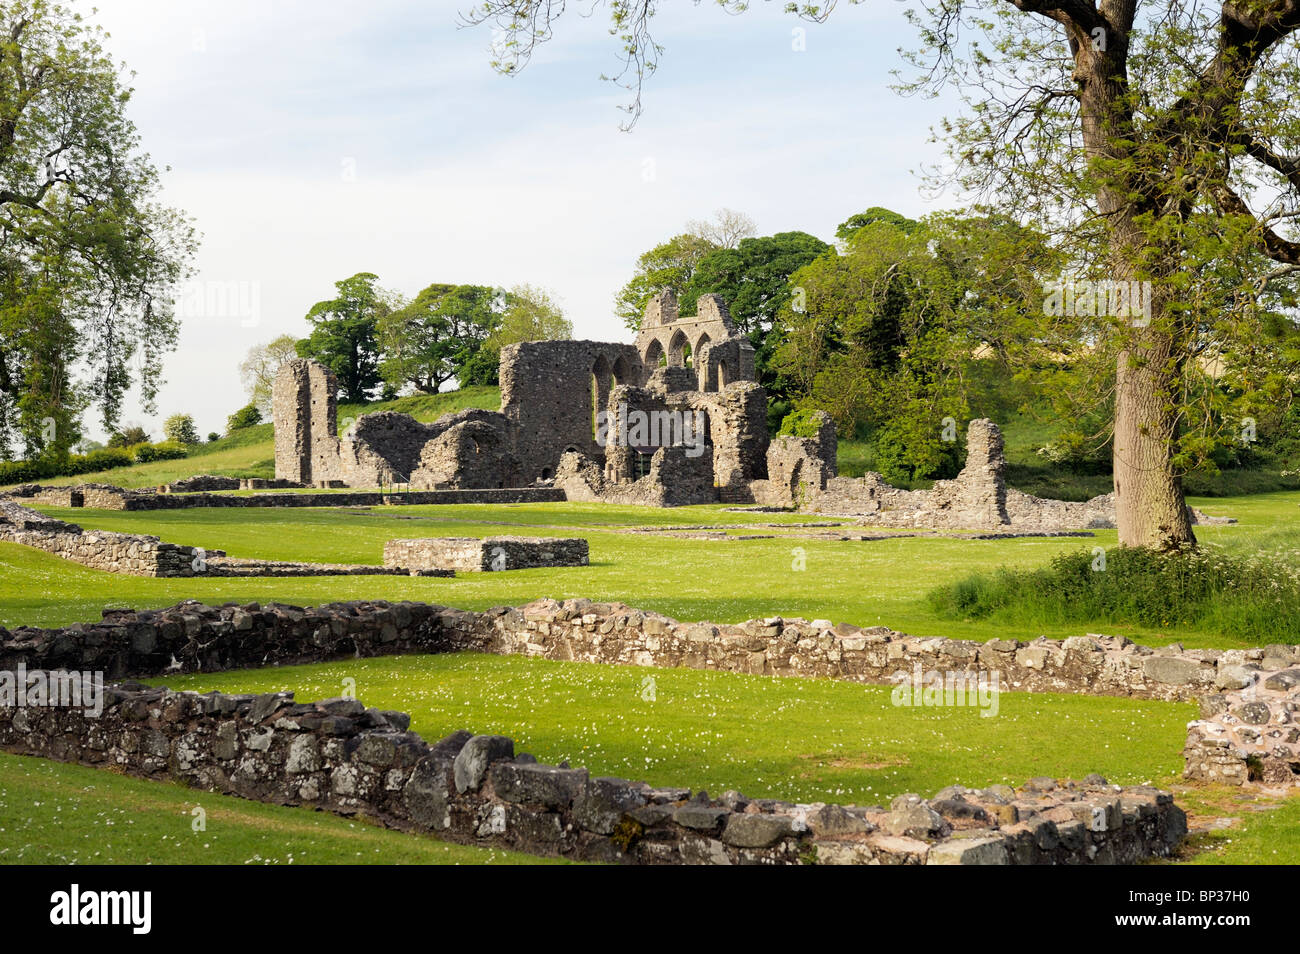 Inch Abbey near Downpatrick, County Down, Northern Ireland. Norman Cistercian abbey founded 1180 by John de Courcy - Stock Image